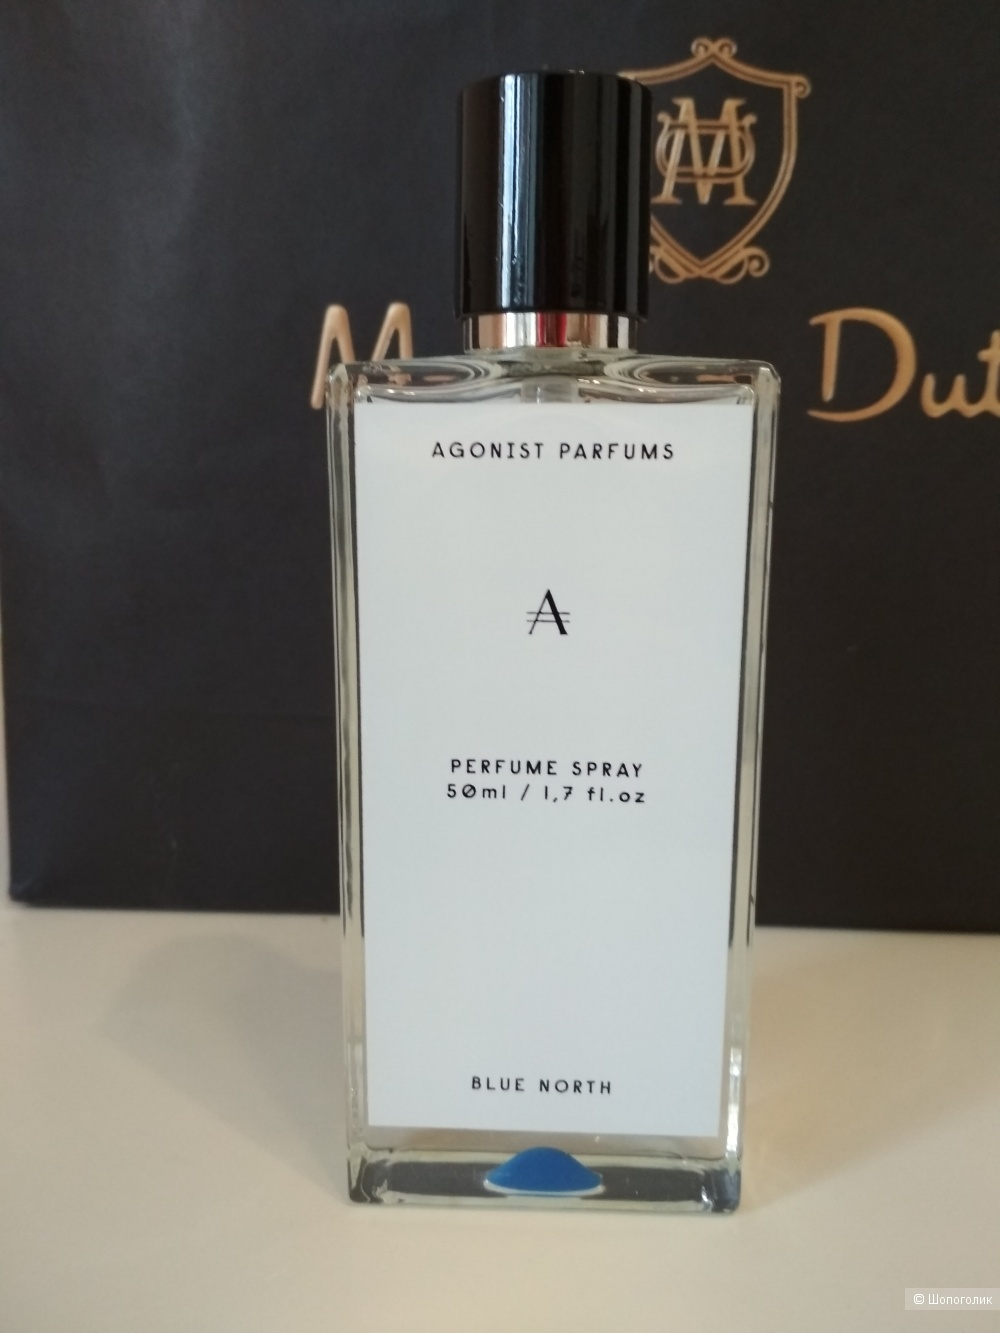 AGONIST PARFUMS/BLUE NORTH, 50 мл